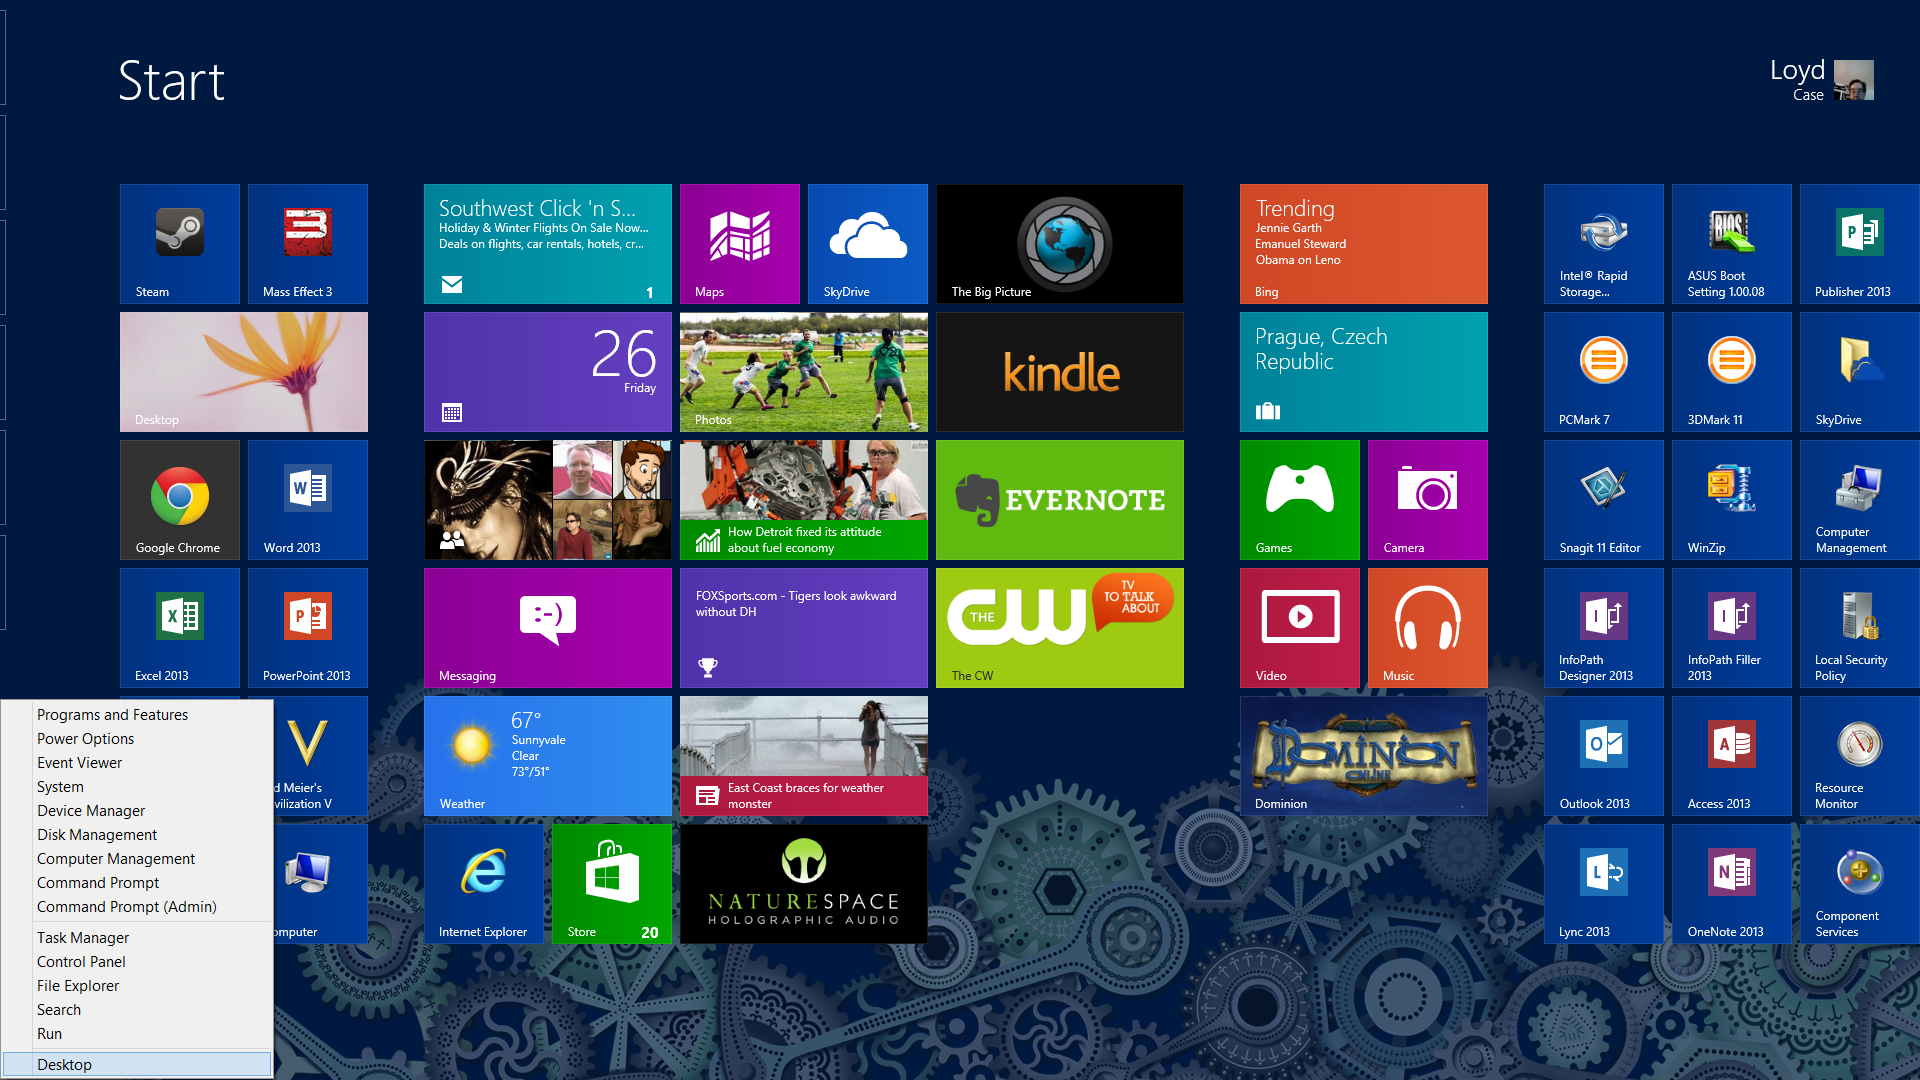 Loyd CaseThe Simple Start menu pops up a list of system tools wherever you are in Windows 8.